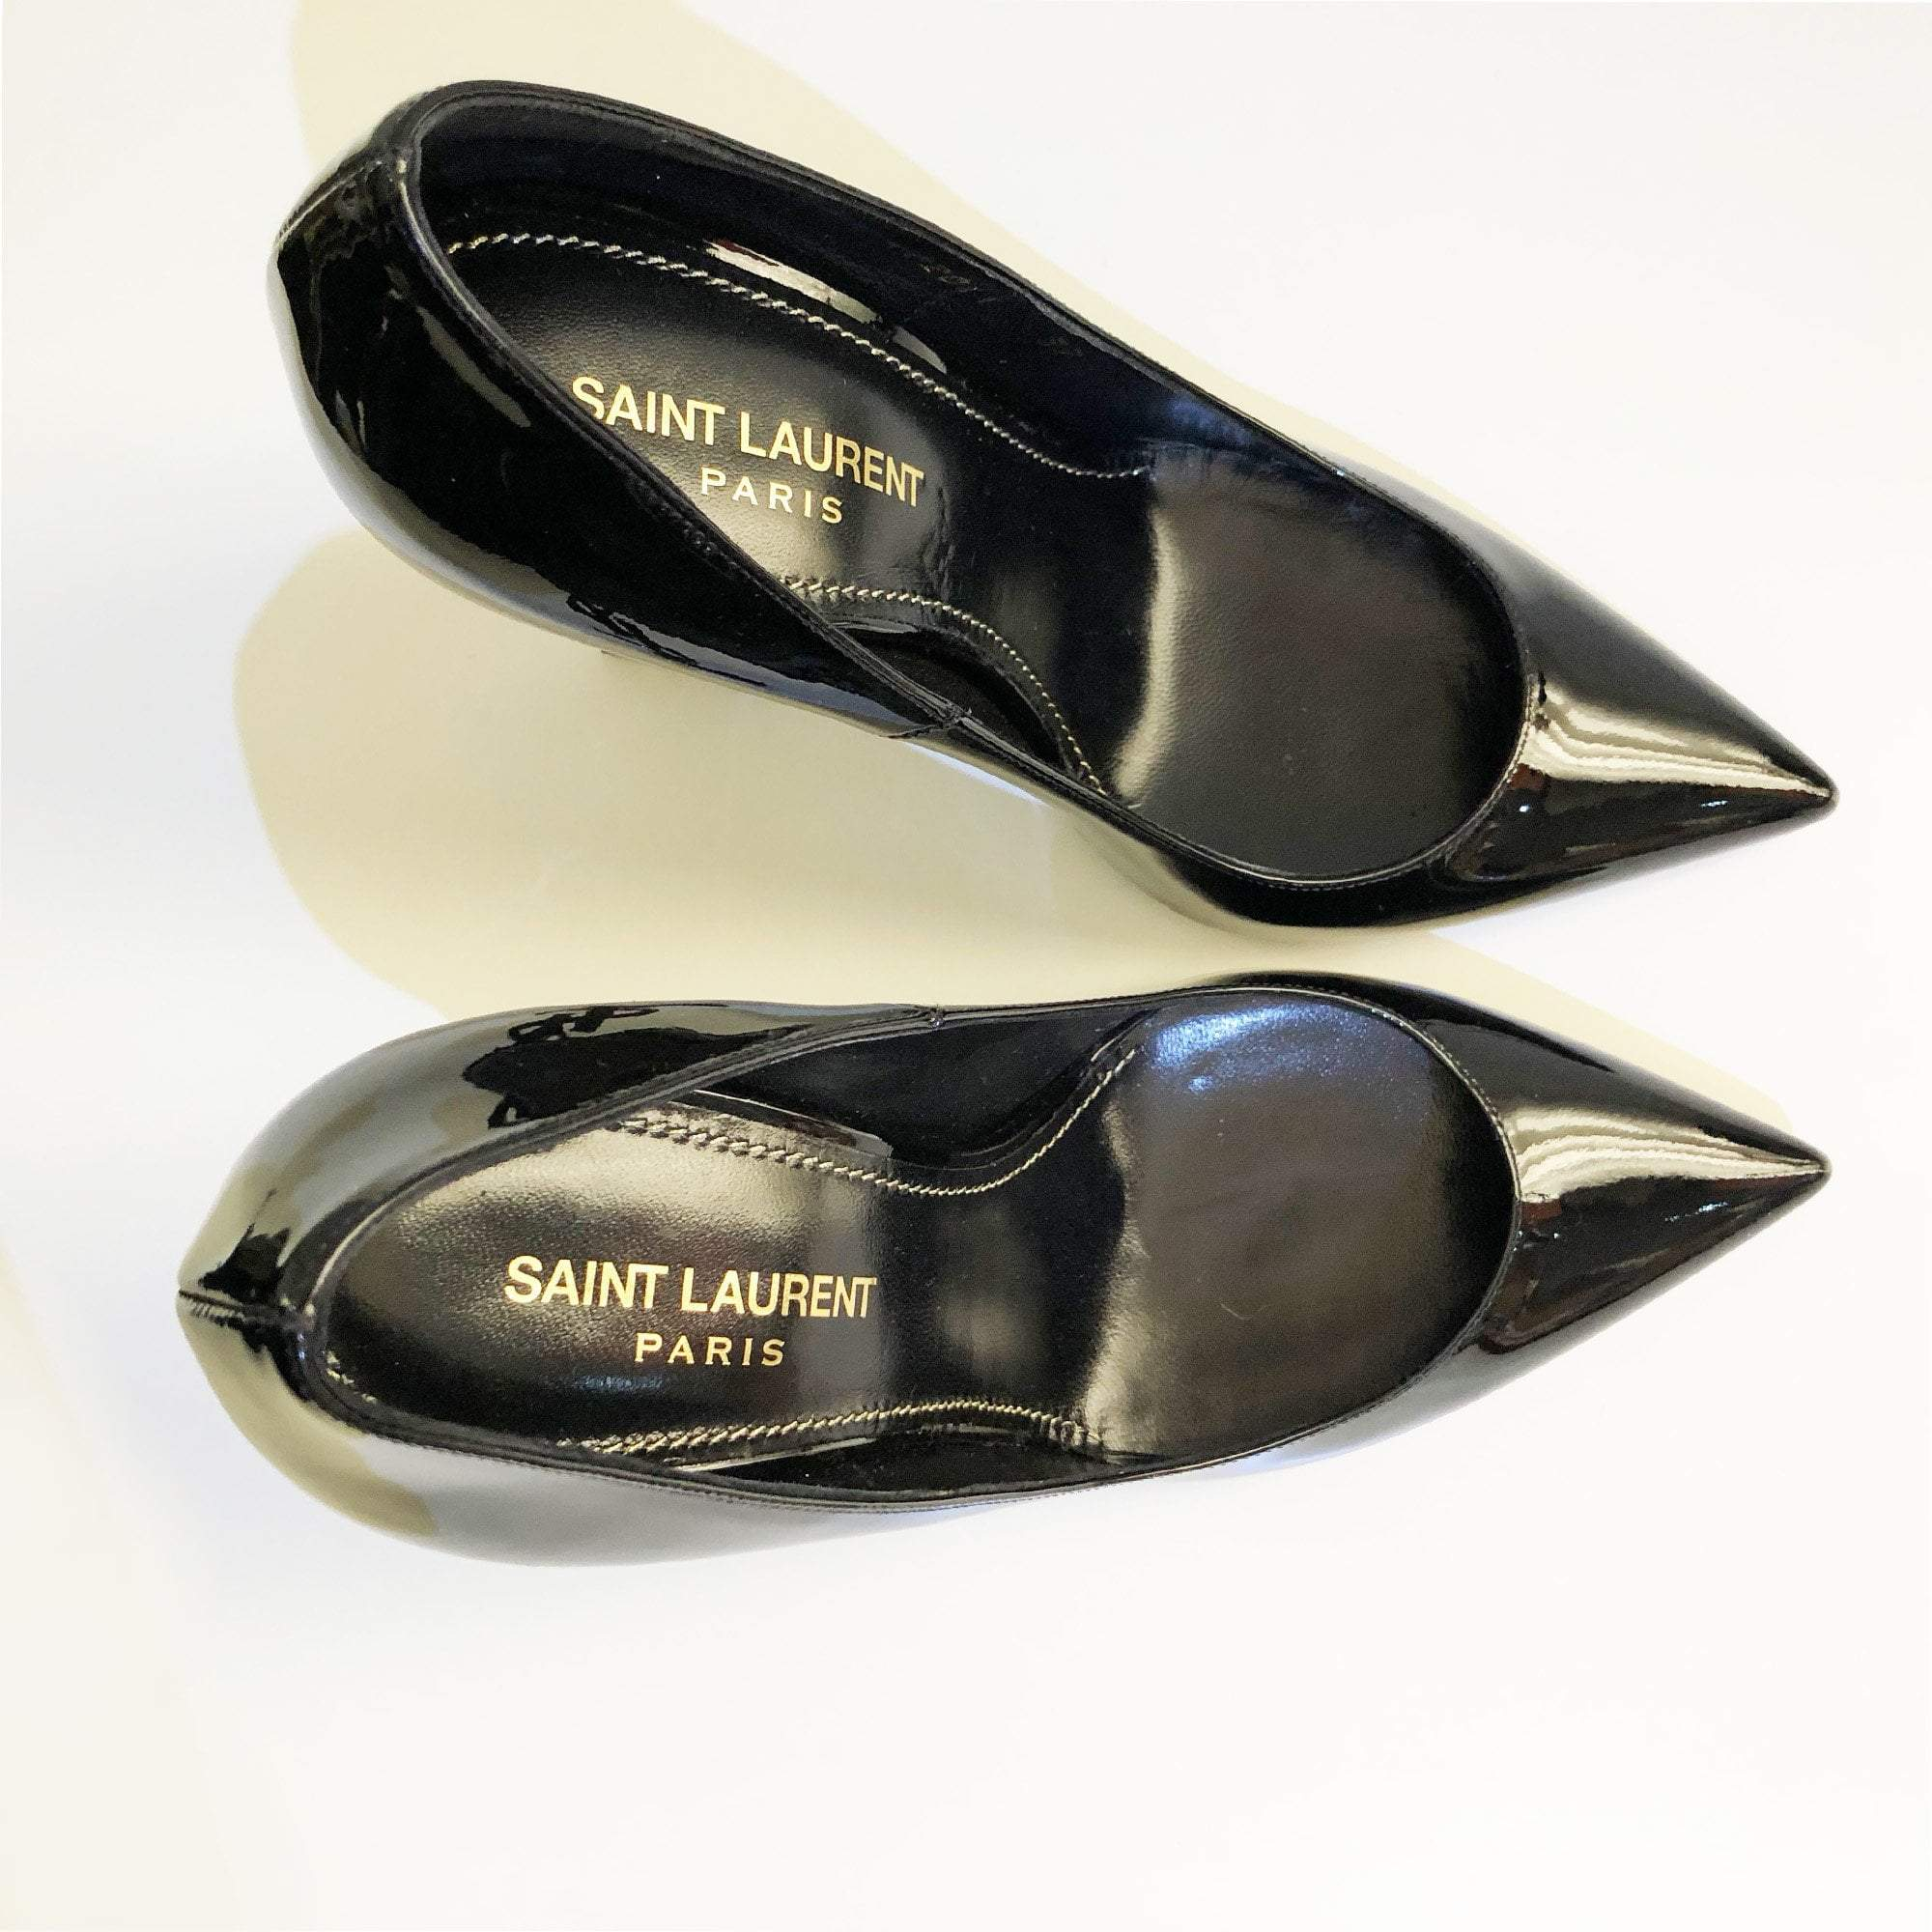 Saint Laurent Opyum 110 Pumps in Black Patent Leather and Chrome